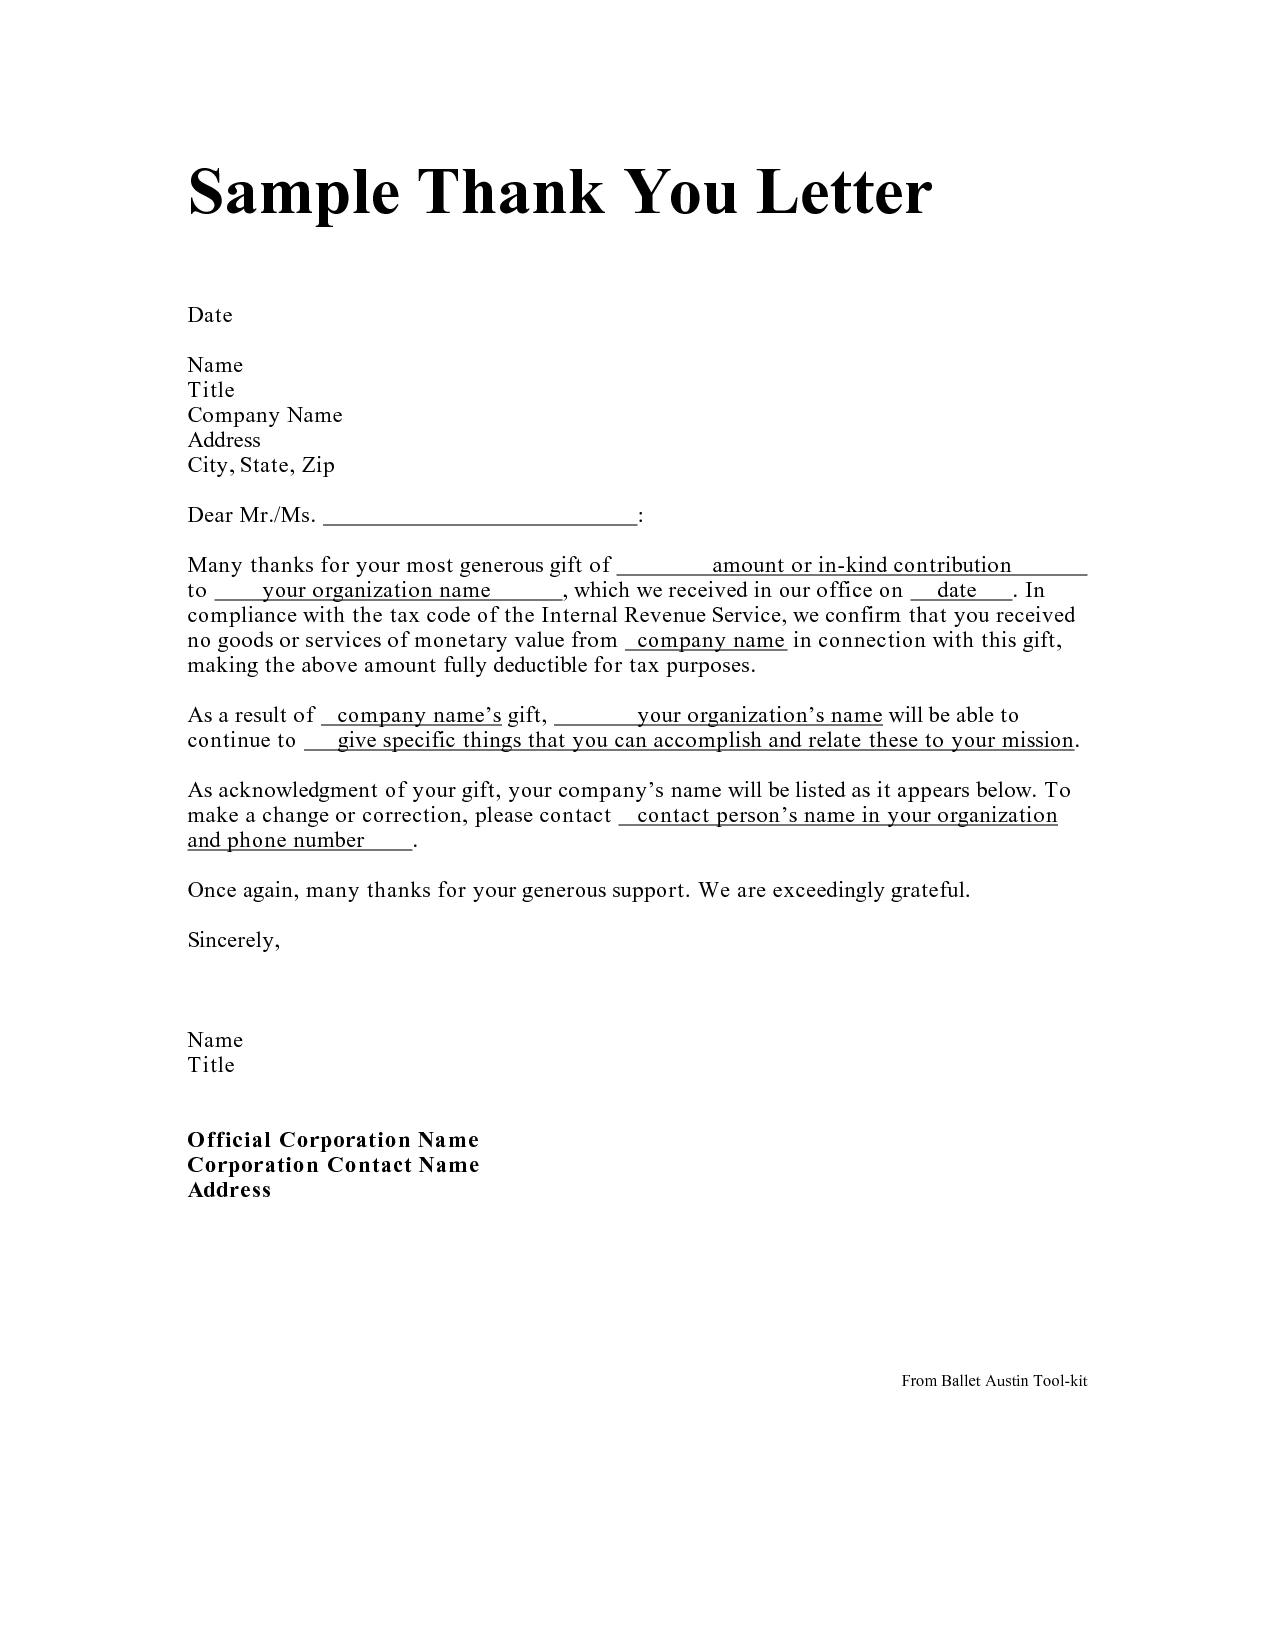 Tax Donation Letter Template - Personal Thank You Letter Personal Thank You Letter Samples